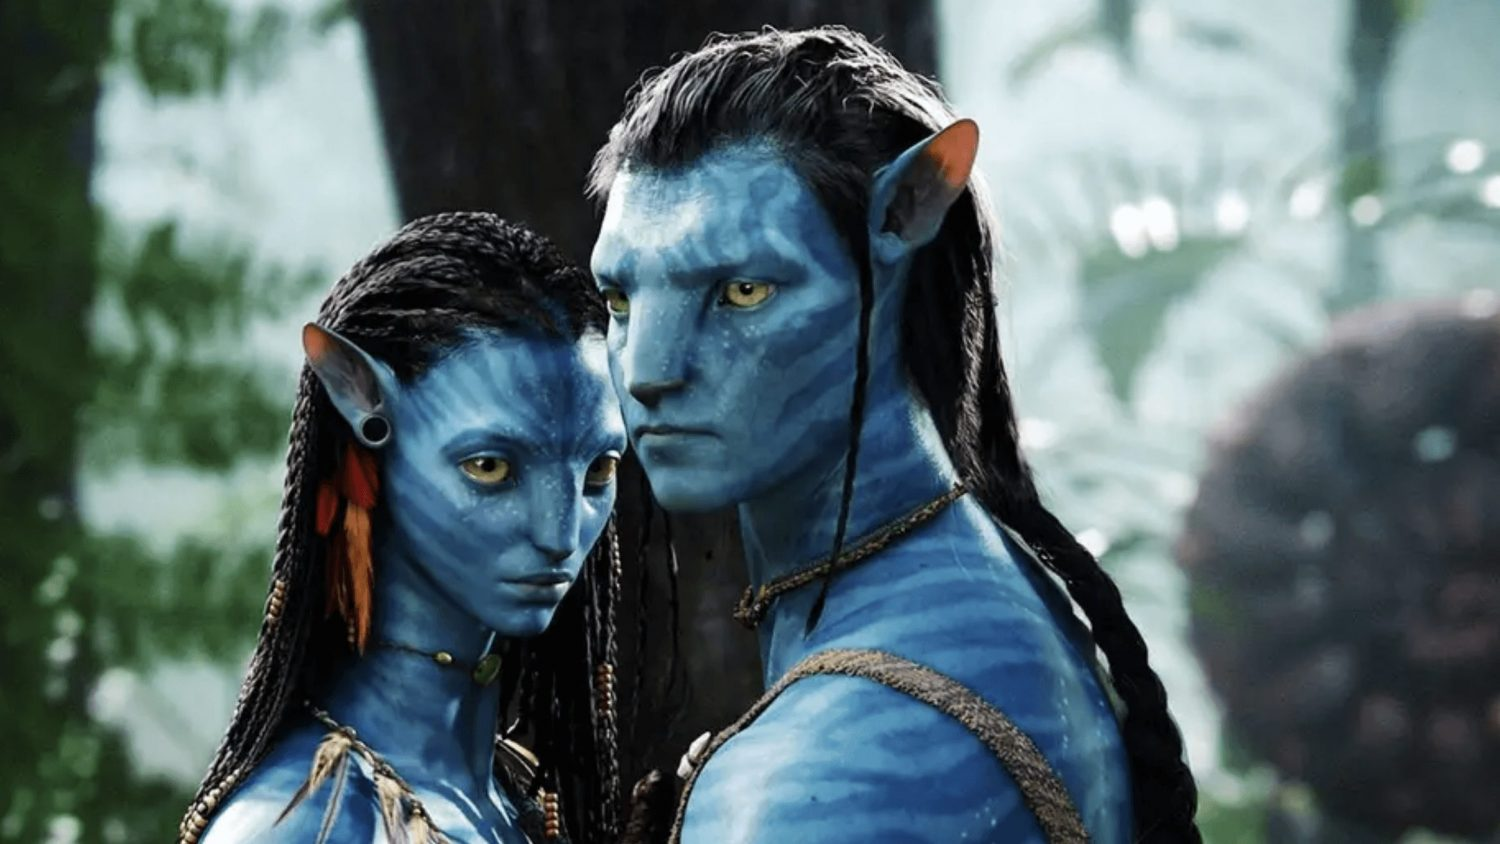 James Cameron's 'Avatar' Sequel Productions Only Serve Vegan Food On Set